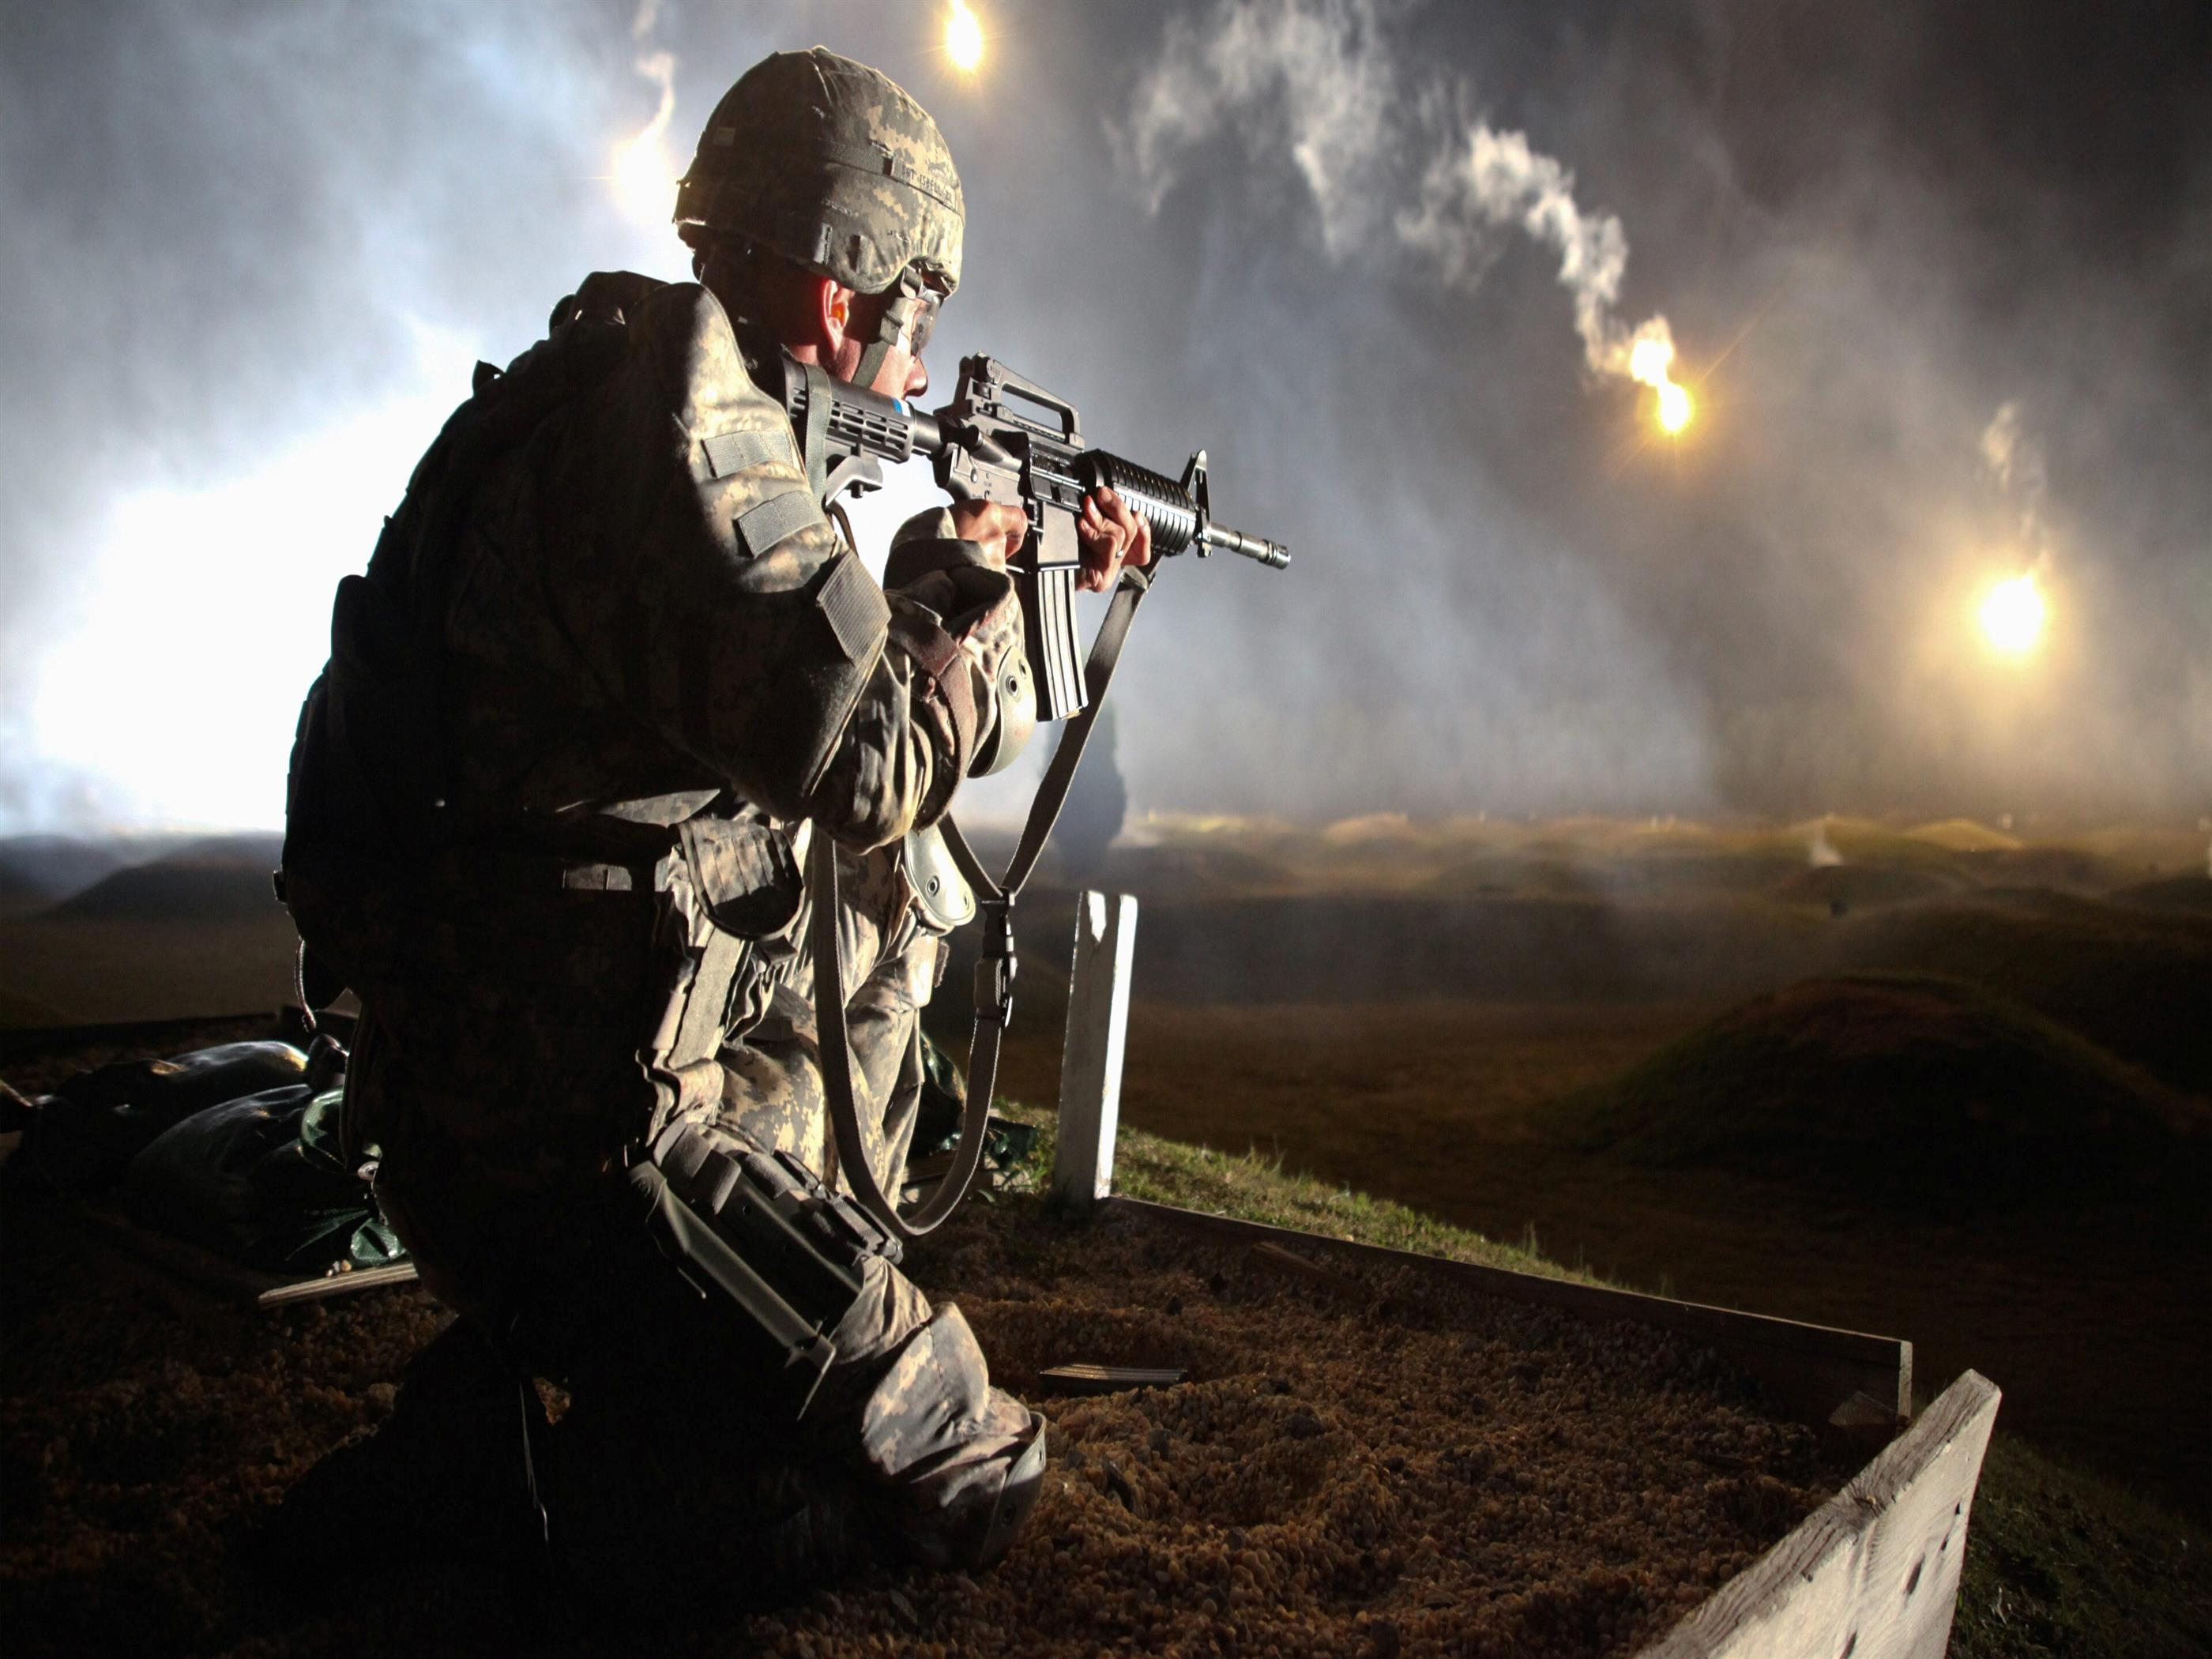 2800x2100 Army Soldier Petroling at Night Photo